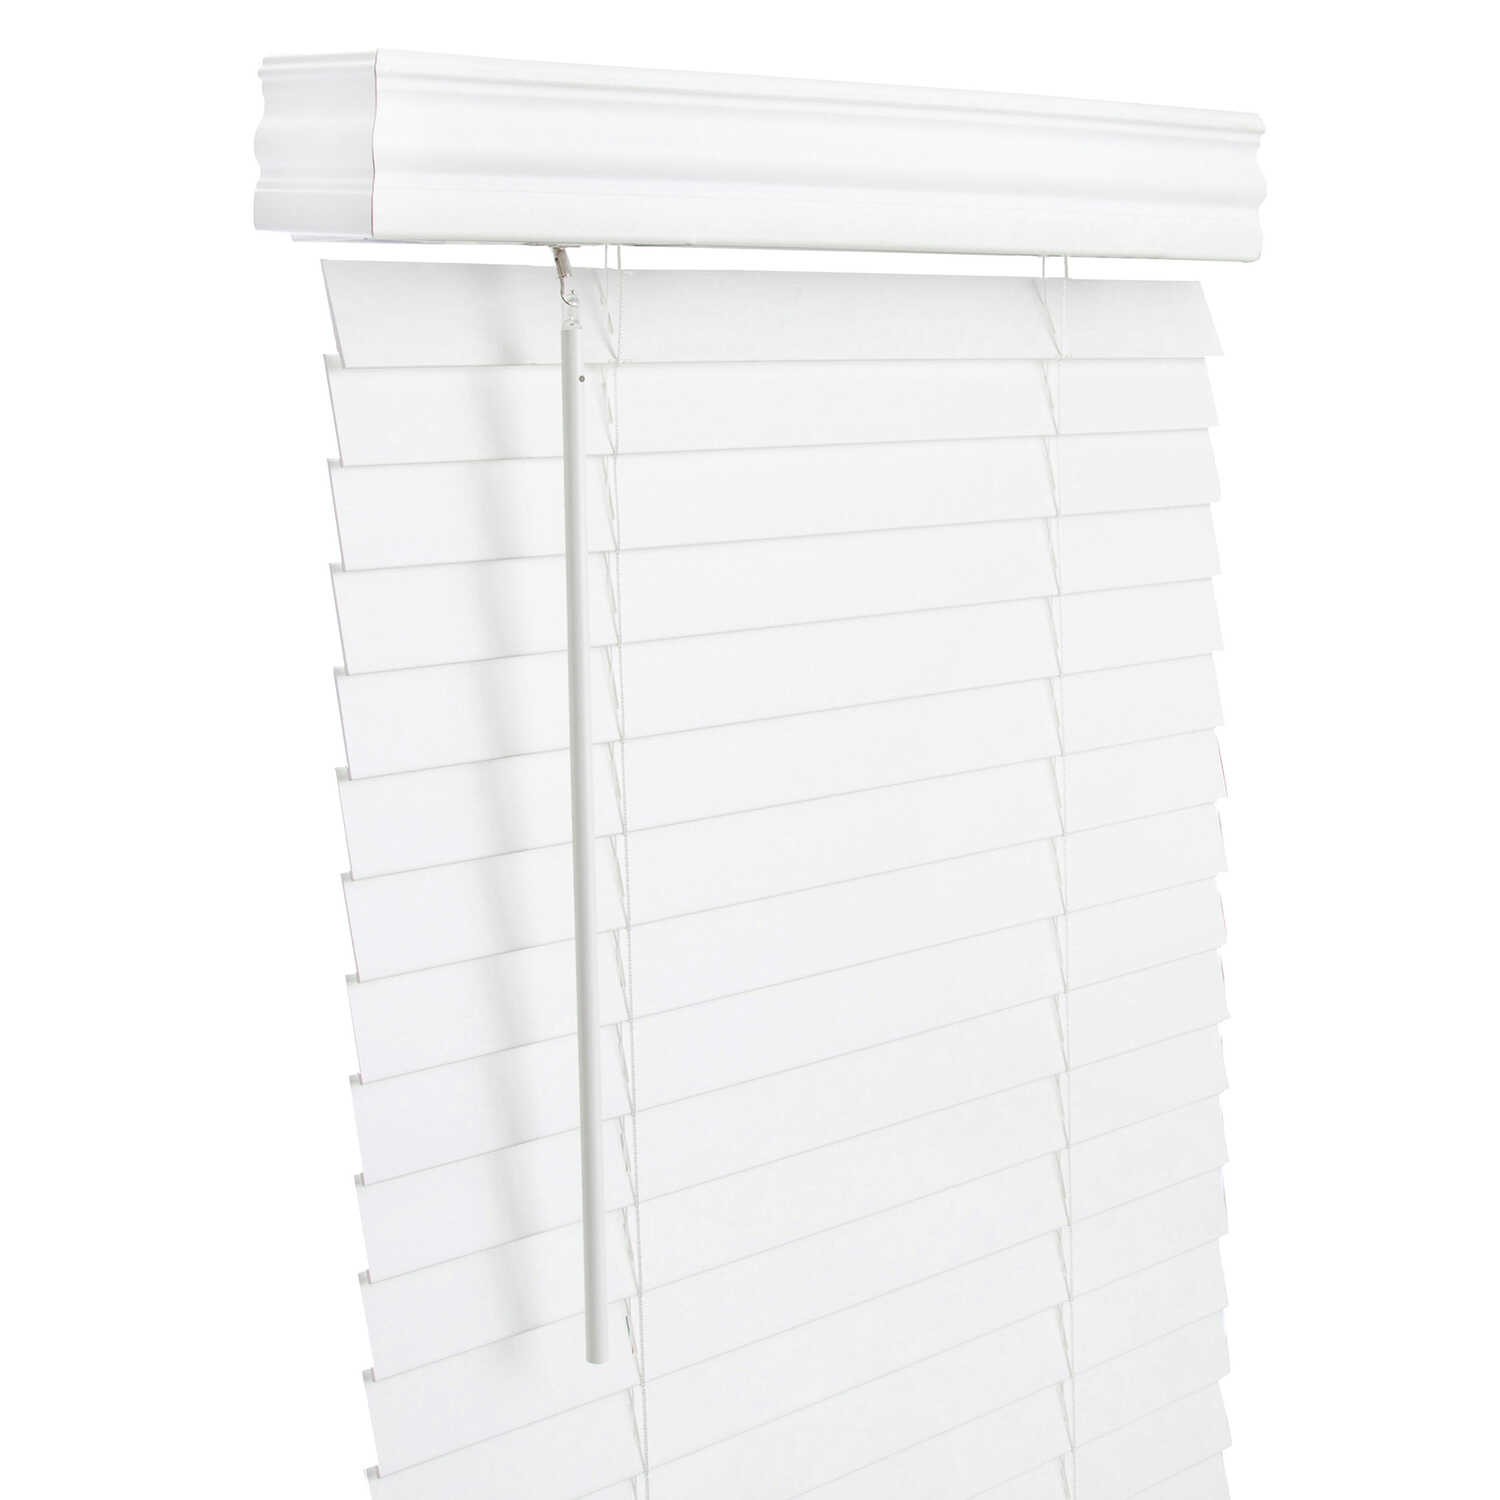 Living Accents  Faux Wood  2 in. Mini-Blinds  24 in. W x 60 in. H White  Cordless